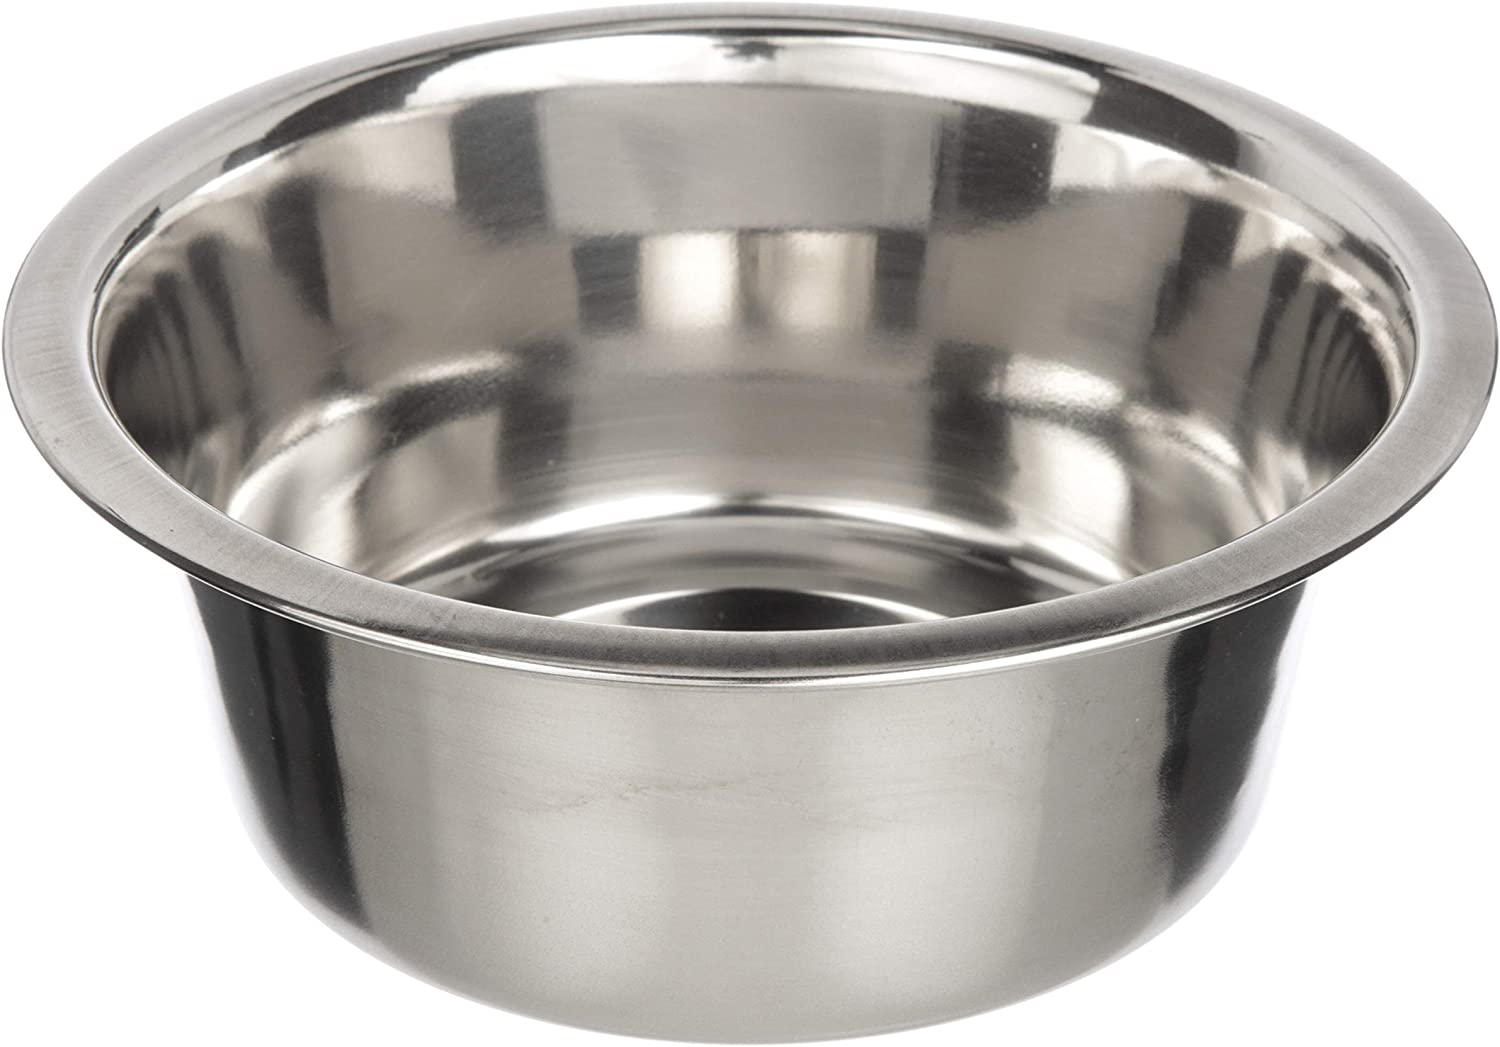 Neater Pet Brands Stainless Steel Dog and Cat Bowls - Neater Feeder Medium Deluxe Extra Replacement Bowl (Metal Food and Water Dish) (3.5 Cup)